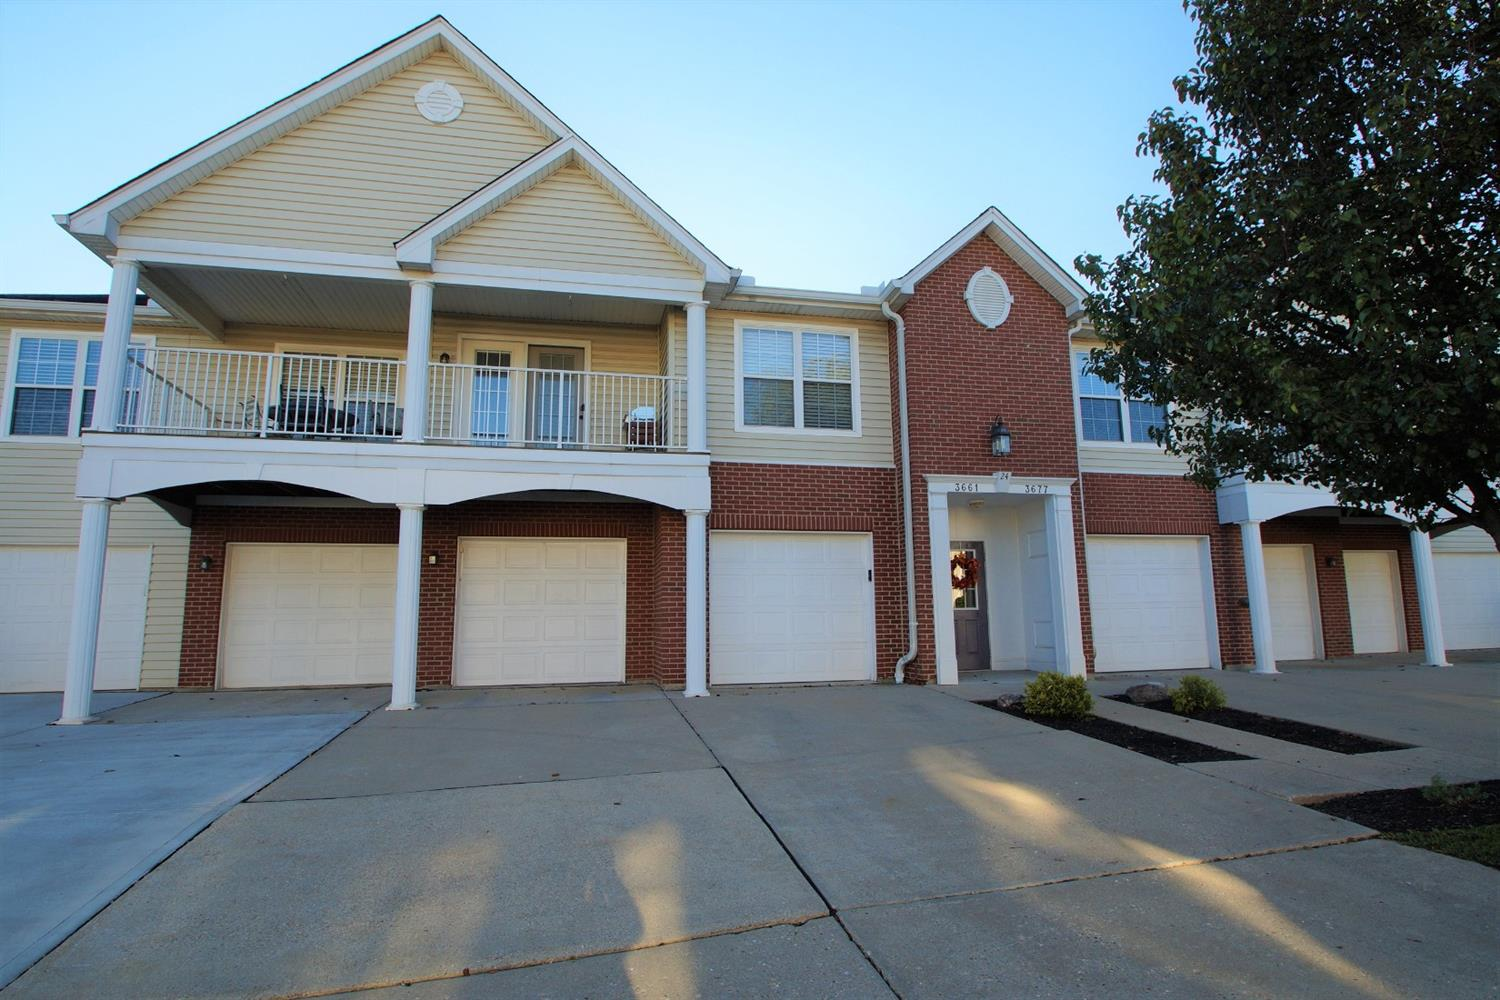 3673 Chestnut Park Ln, 8 Miami Twp. (West), OH